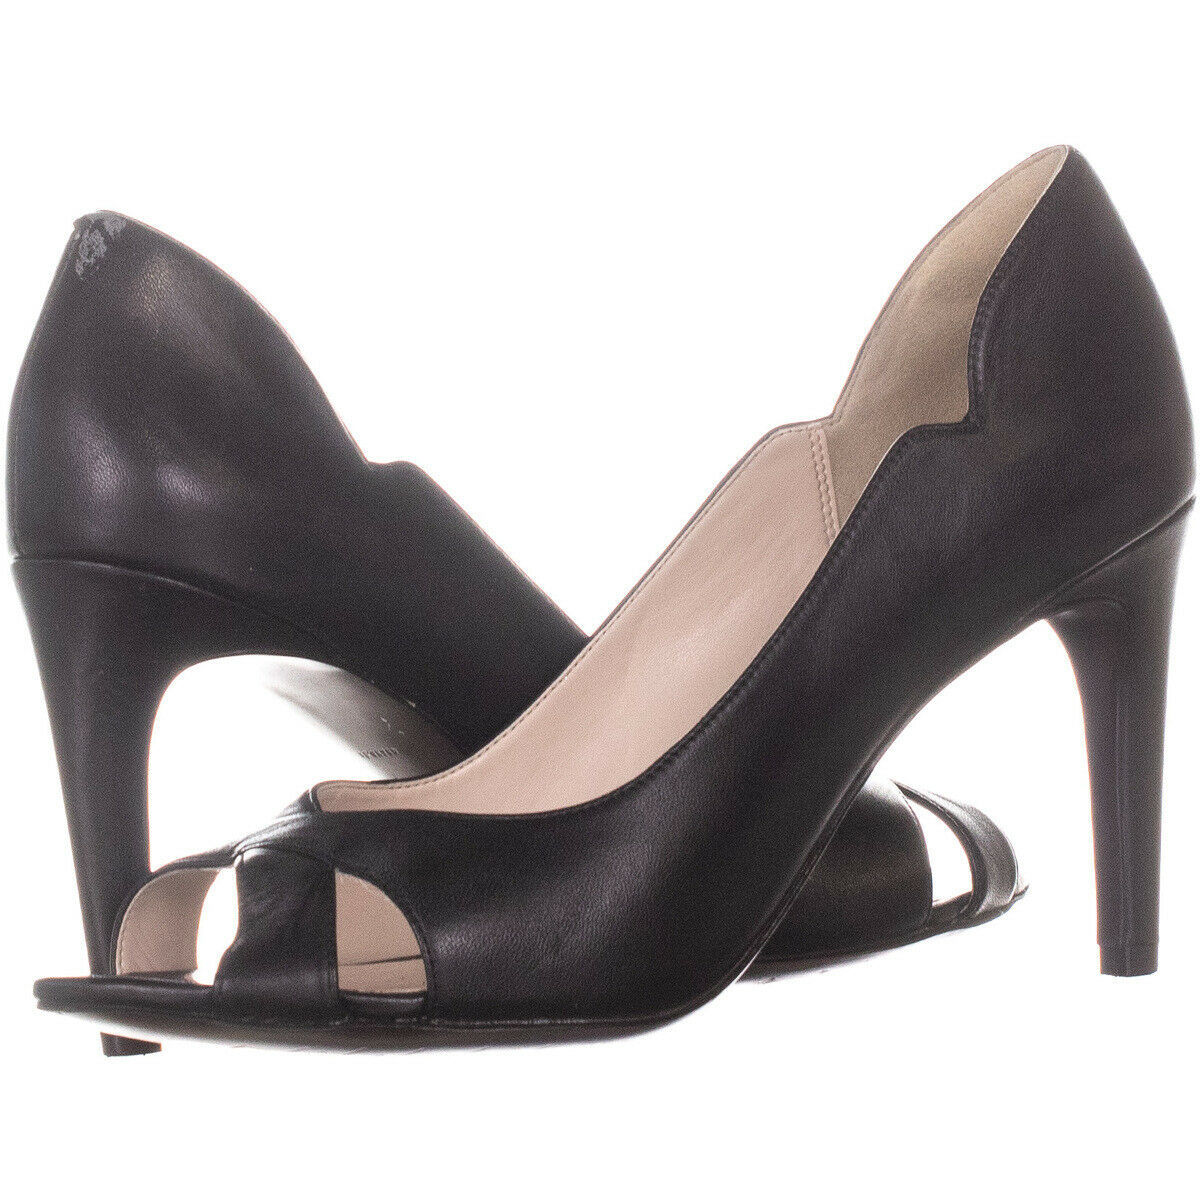 24e8cd73aa Cole Haan 2568 Open Toe Criss Cross Heels, Black, 9.5 US - $67.19